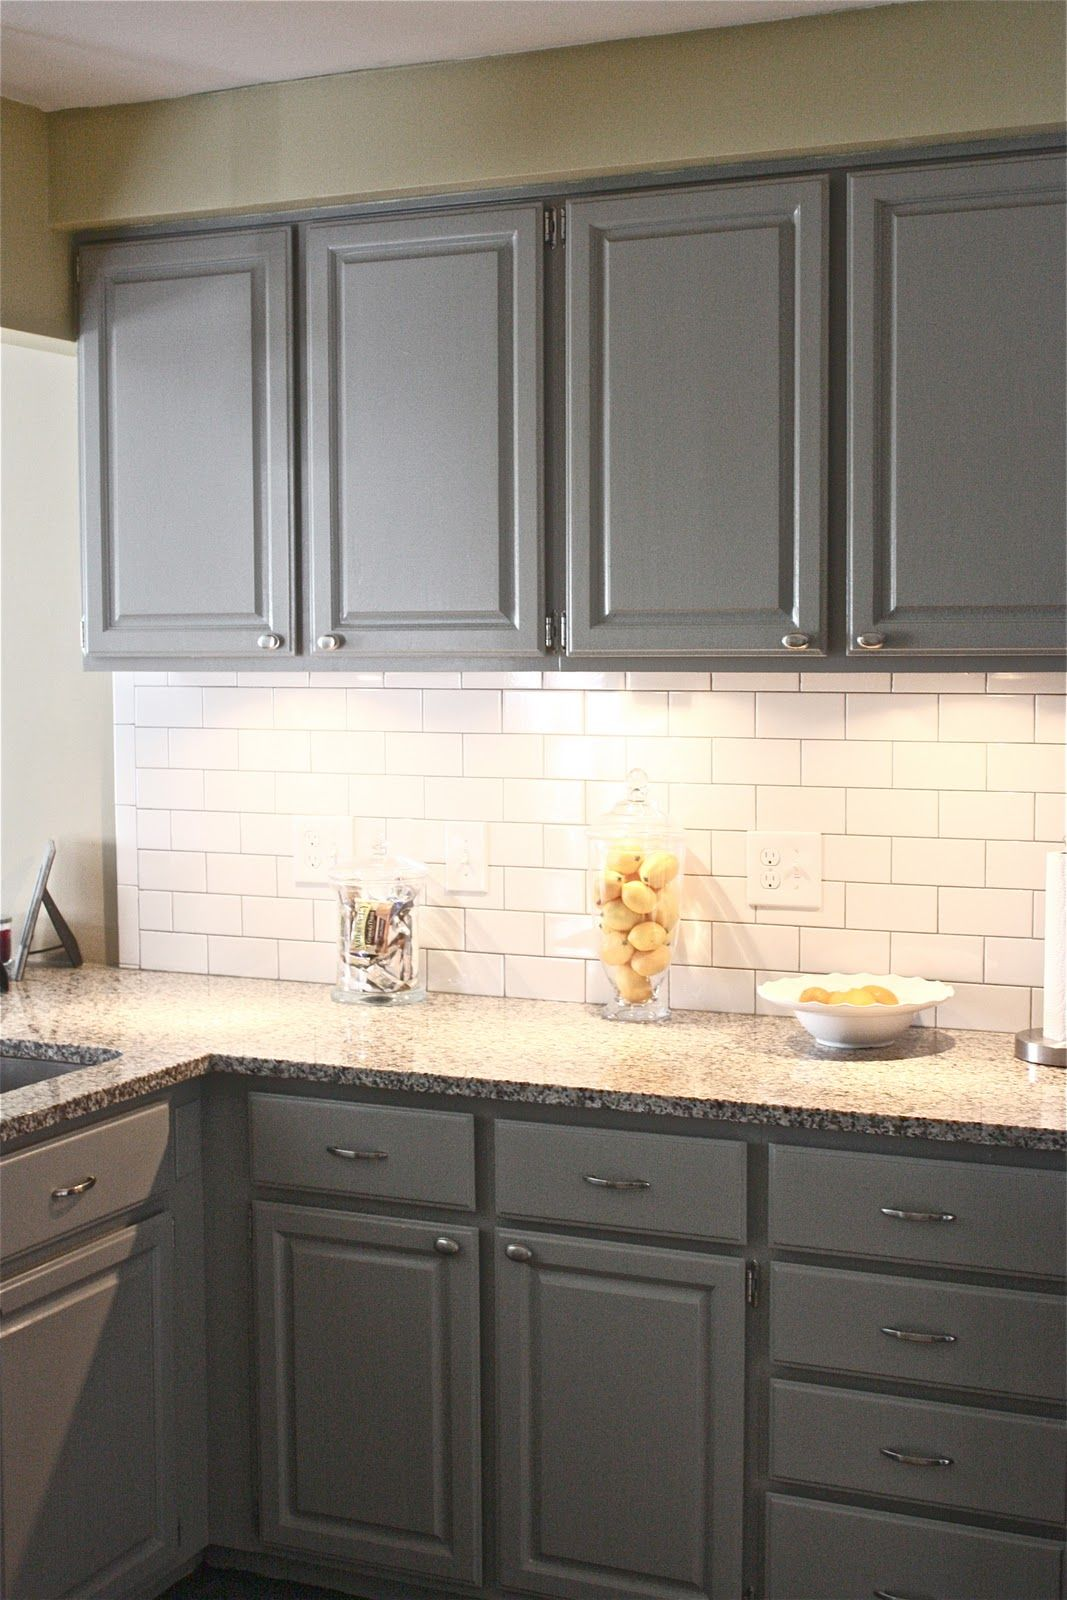 White Cabinets And Grey Countertops White Cabinets Corian Countertops With Tile Floor